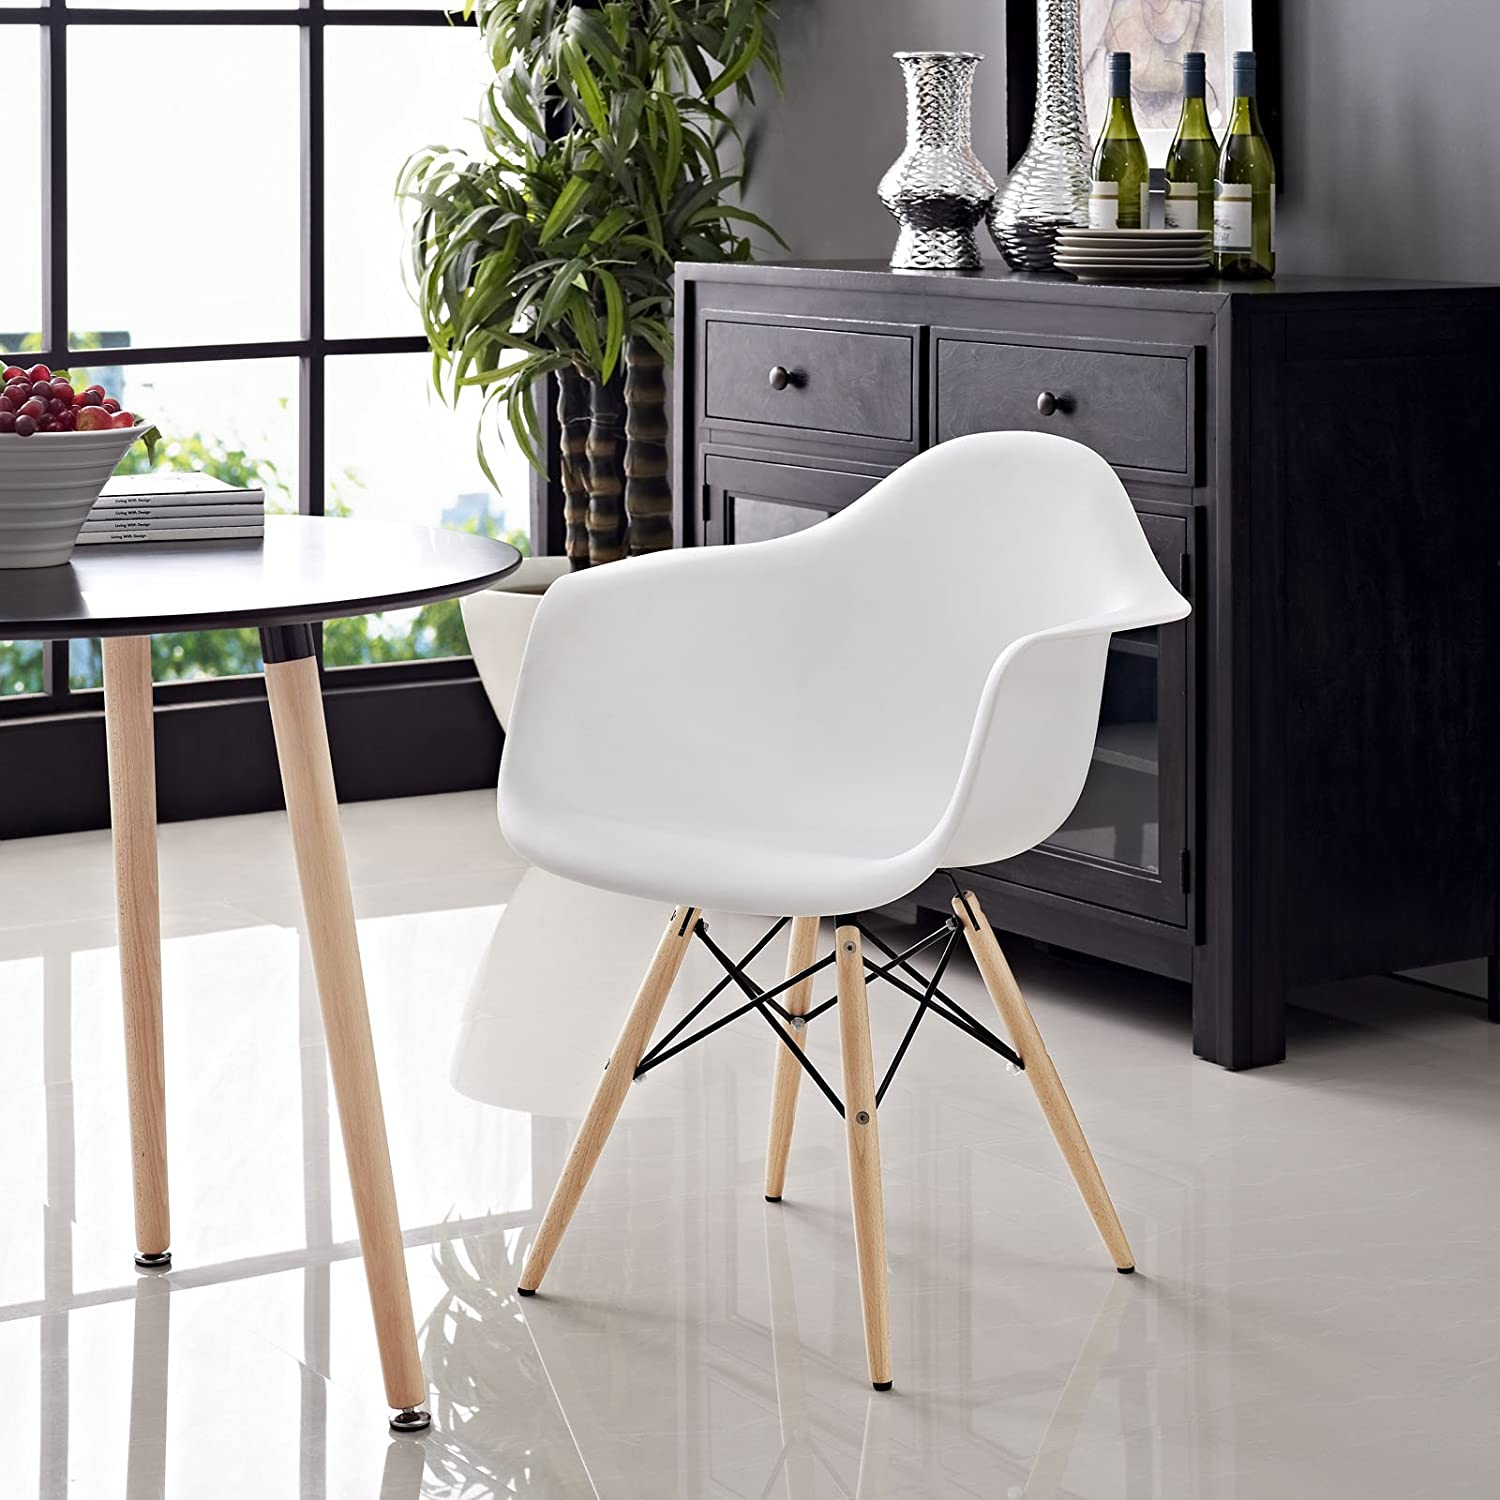 Modway Pyramid Dining Armchair with Natural Wood Legs in White Modway Inc EEI-182-WHI